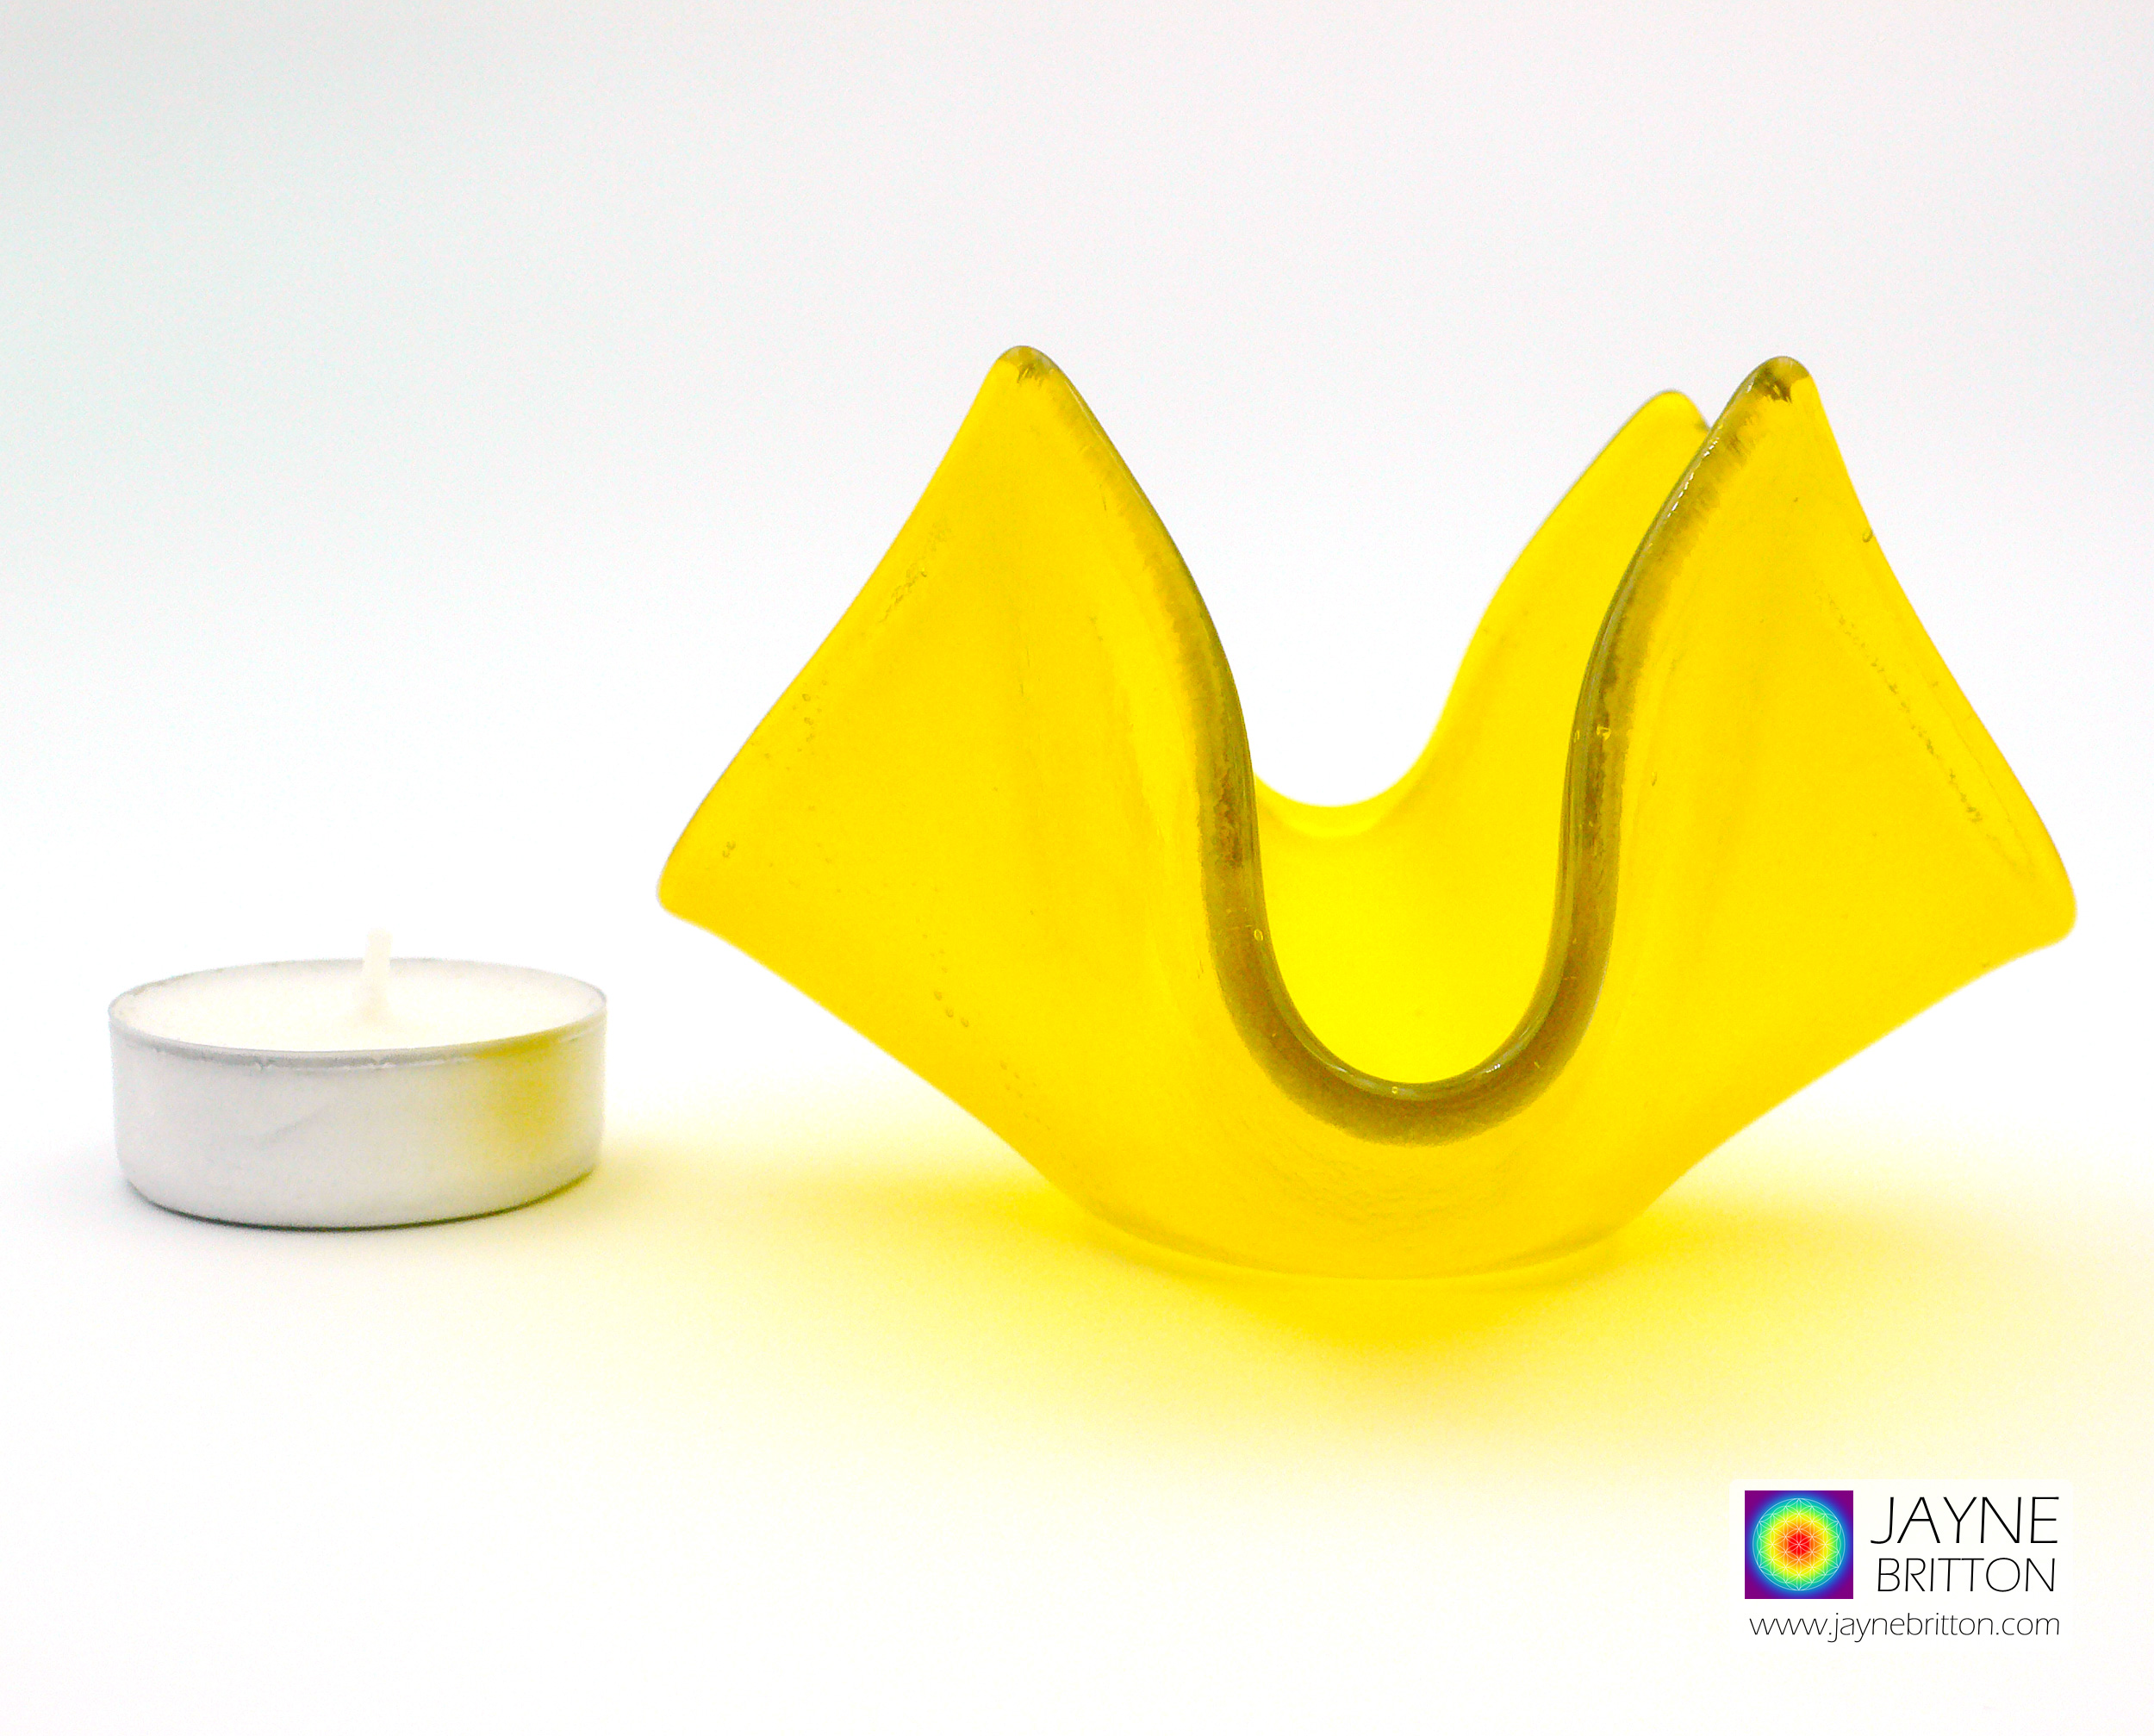 Yellow tealight candle holder, yellow crystal bowl, trinket bowl, fused glass dish